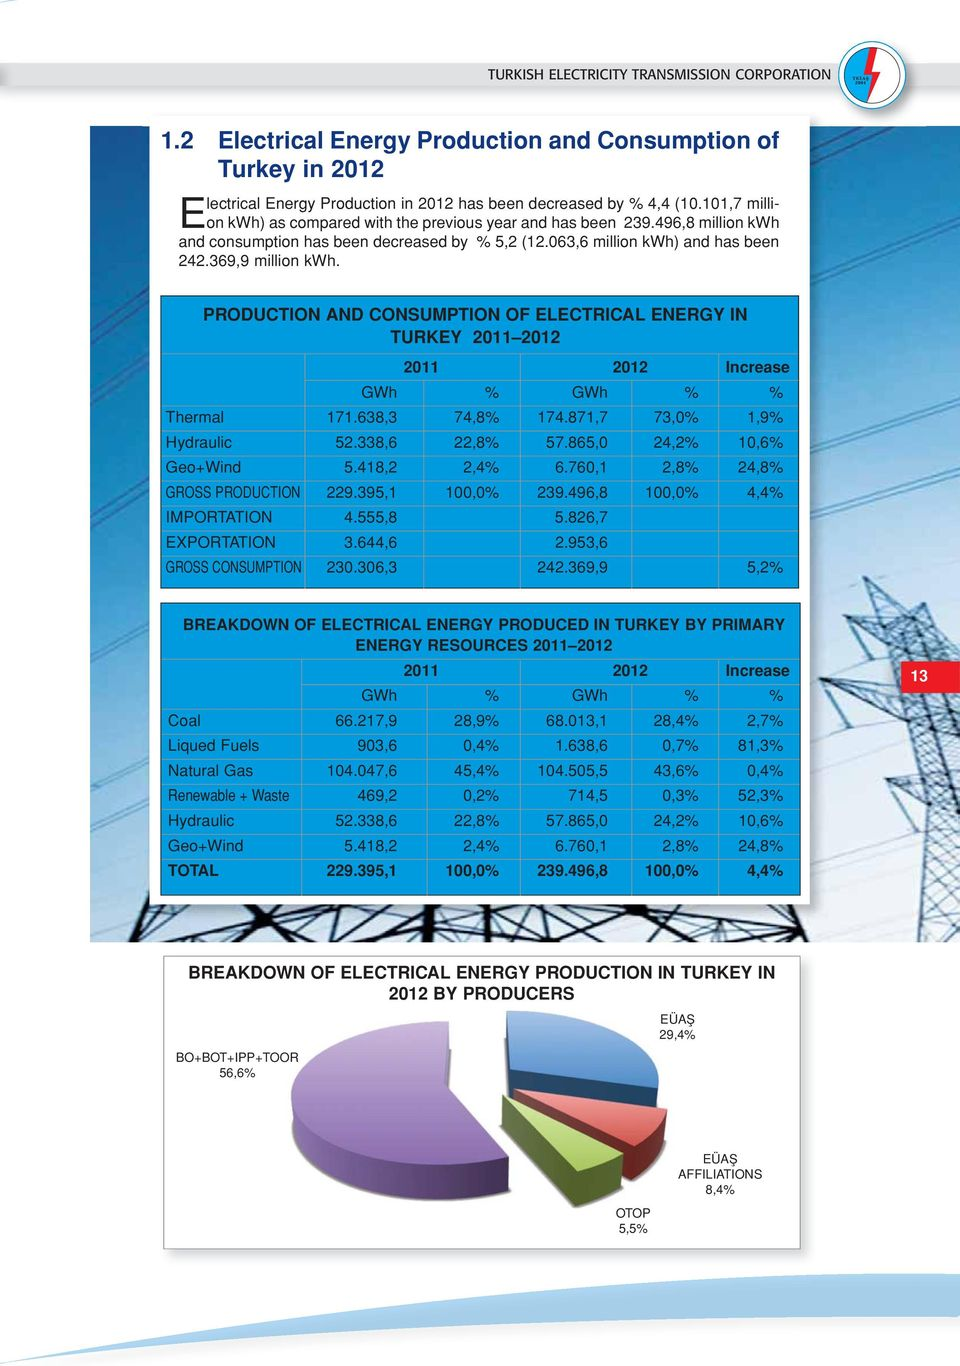 PRODUCTION AND CONSUMPTION OF ELECTRICAL ENERGY IN TURKEY 2011 2012 2011 2012 Increase GWh % GWh % % Thermal 171.638,3 74,8% 174.871,7 73,0% 1,9% Hydraulic 52.338,6 22,8% 57.